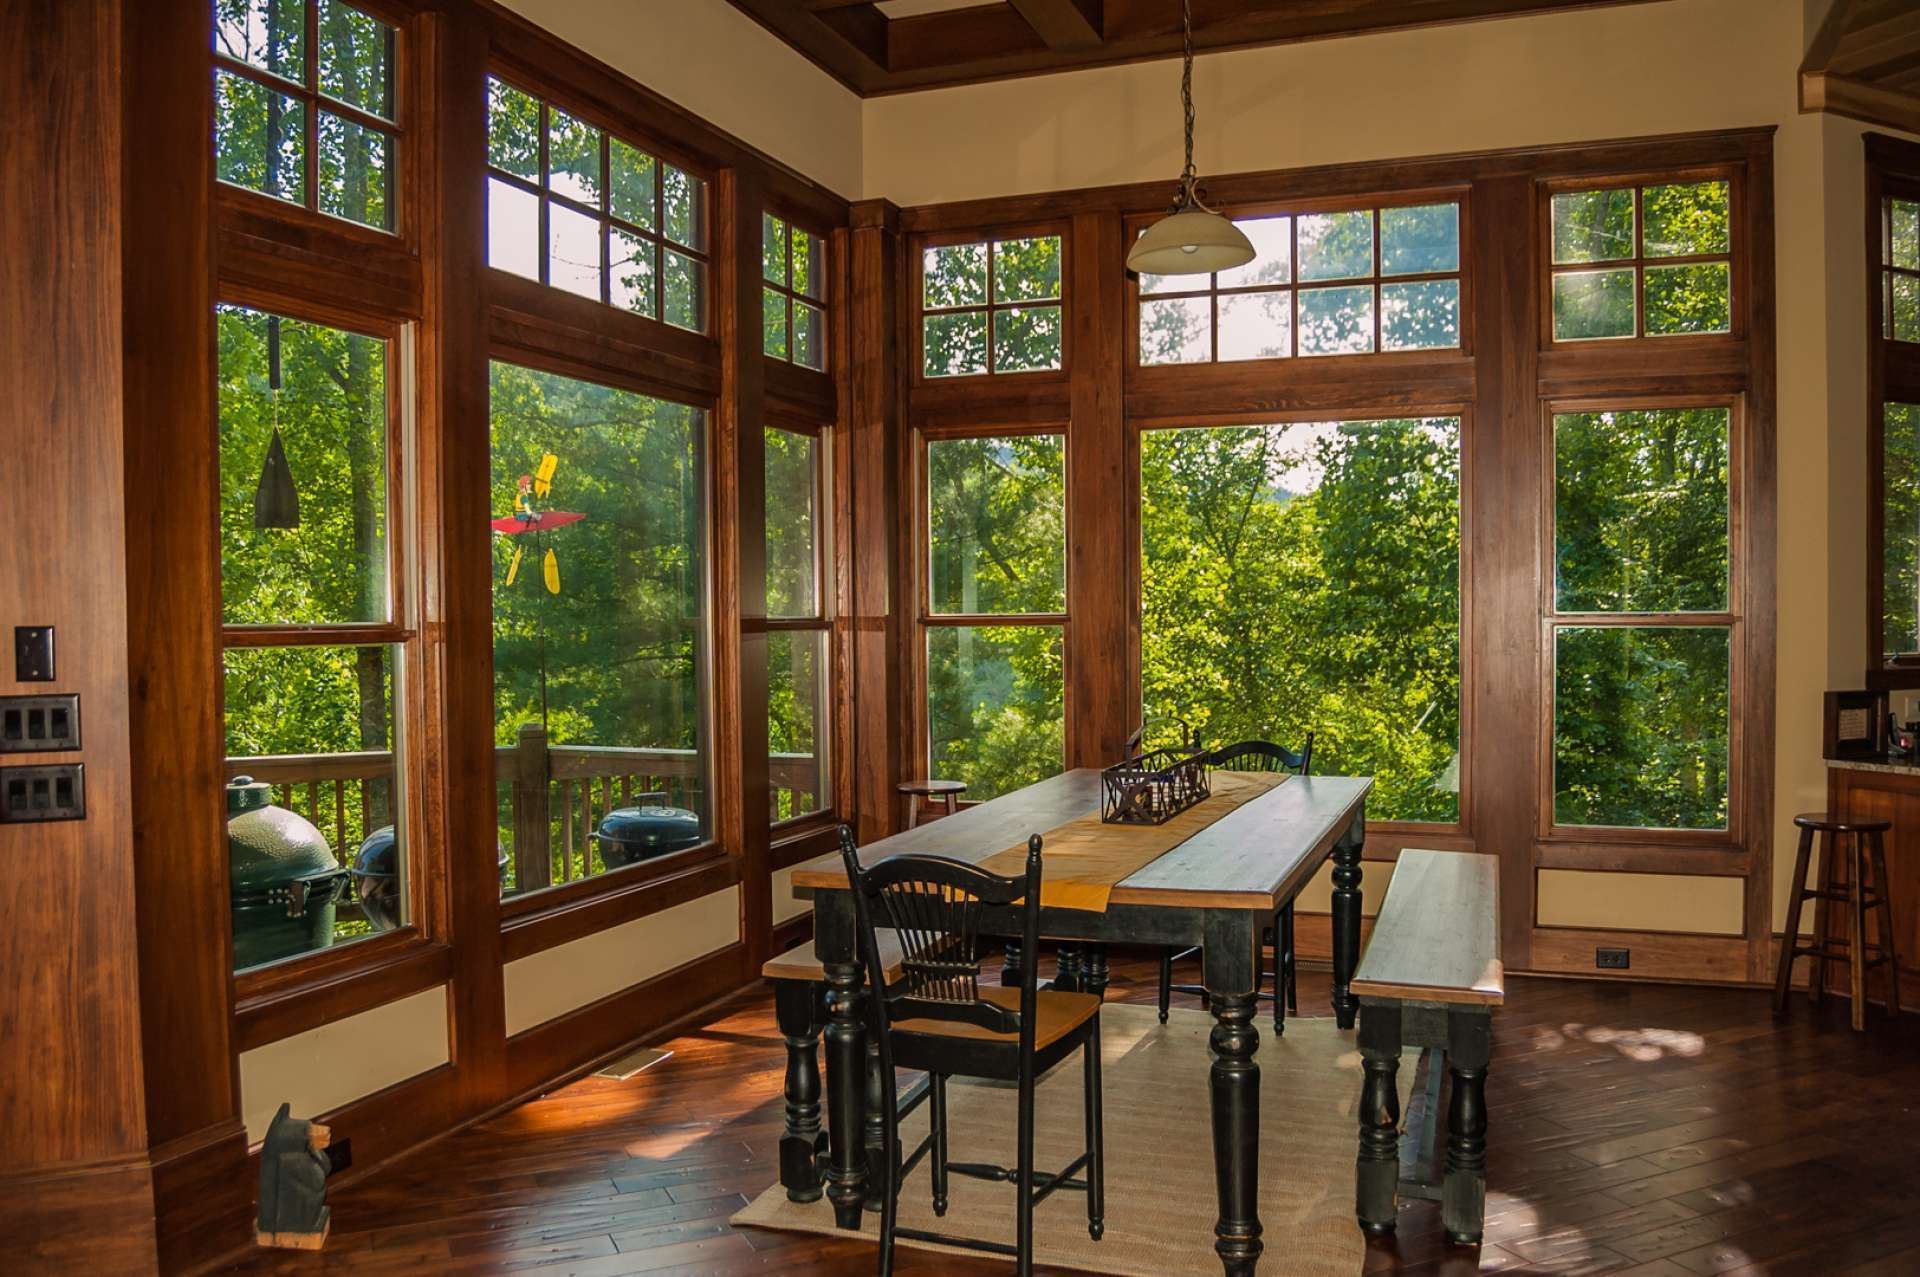 The dining area enjoys full view of the outdoors when dining inside.